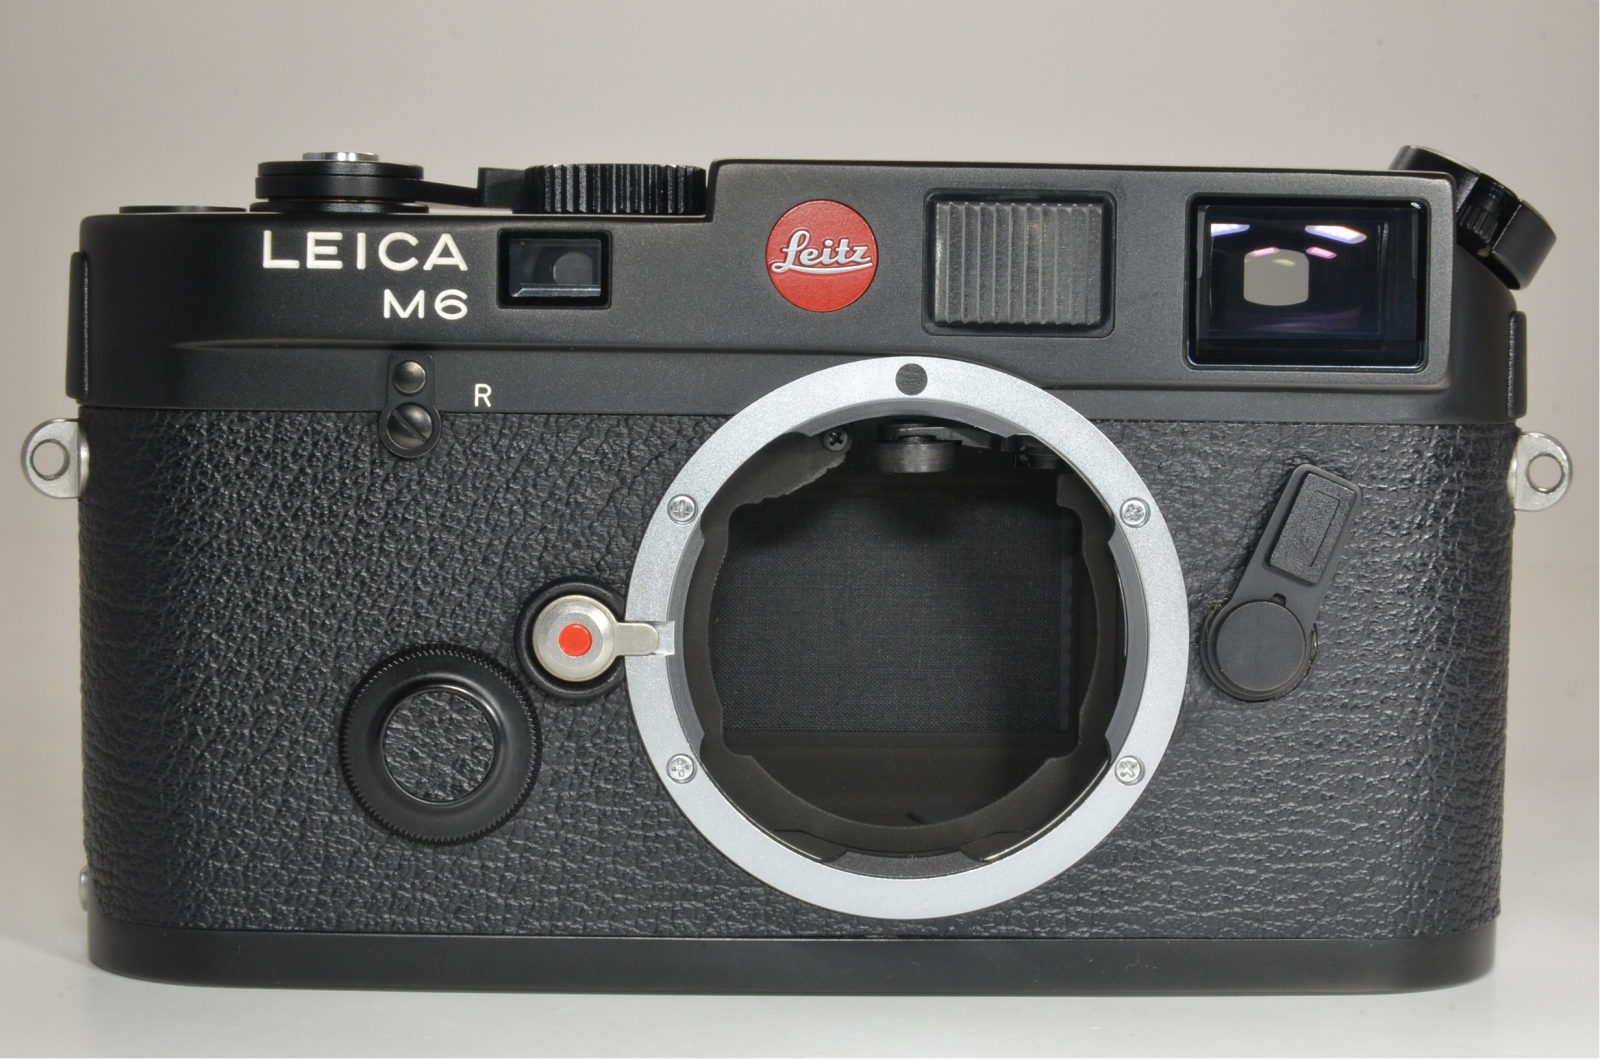 leica m6 0.72 black rangefinder in boxed serial no.1709679 year 1986